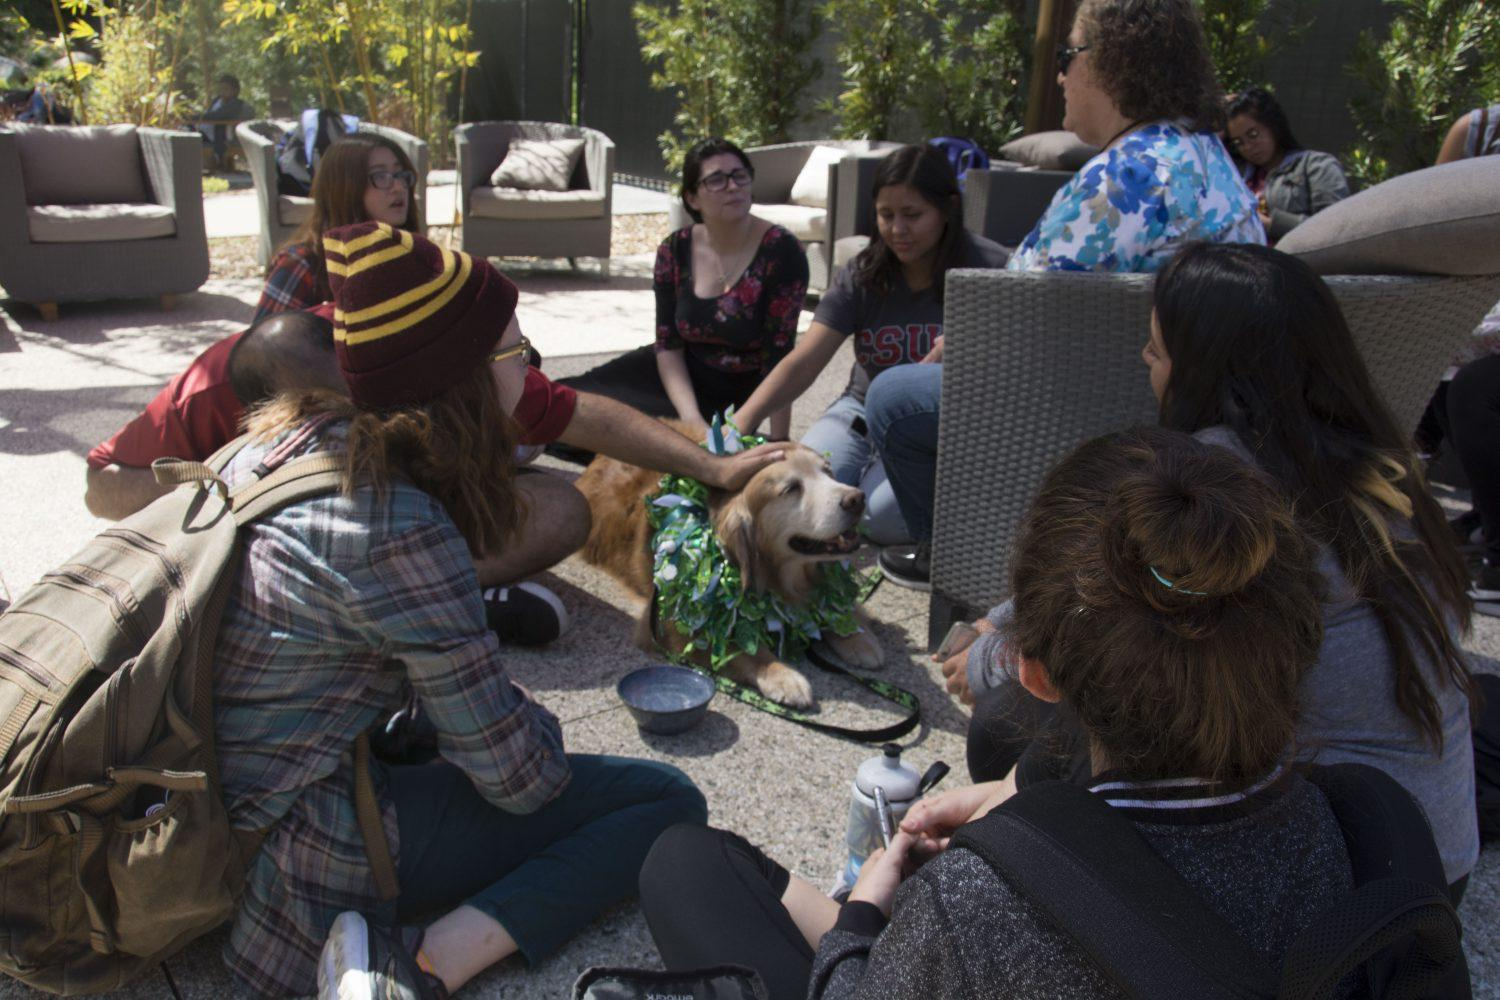 CSUN+students+gather+around+Hank%2C+a+10-year-old+golden+retriever%2C+brought+to+campus+by+owner+Beverly+Radloff+in+order+to+relax+students+for+their+upcoming+midterms.+Photo+credit%3A+Nicollette+Ashtiani